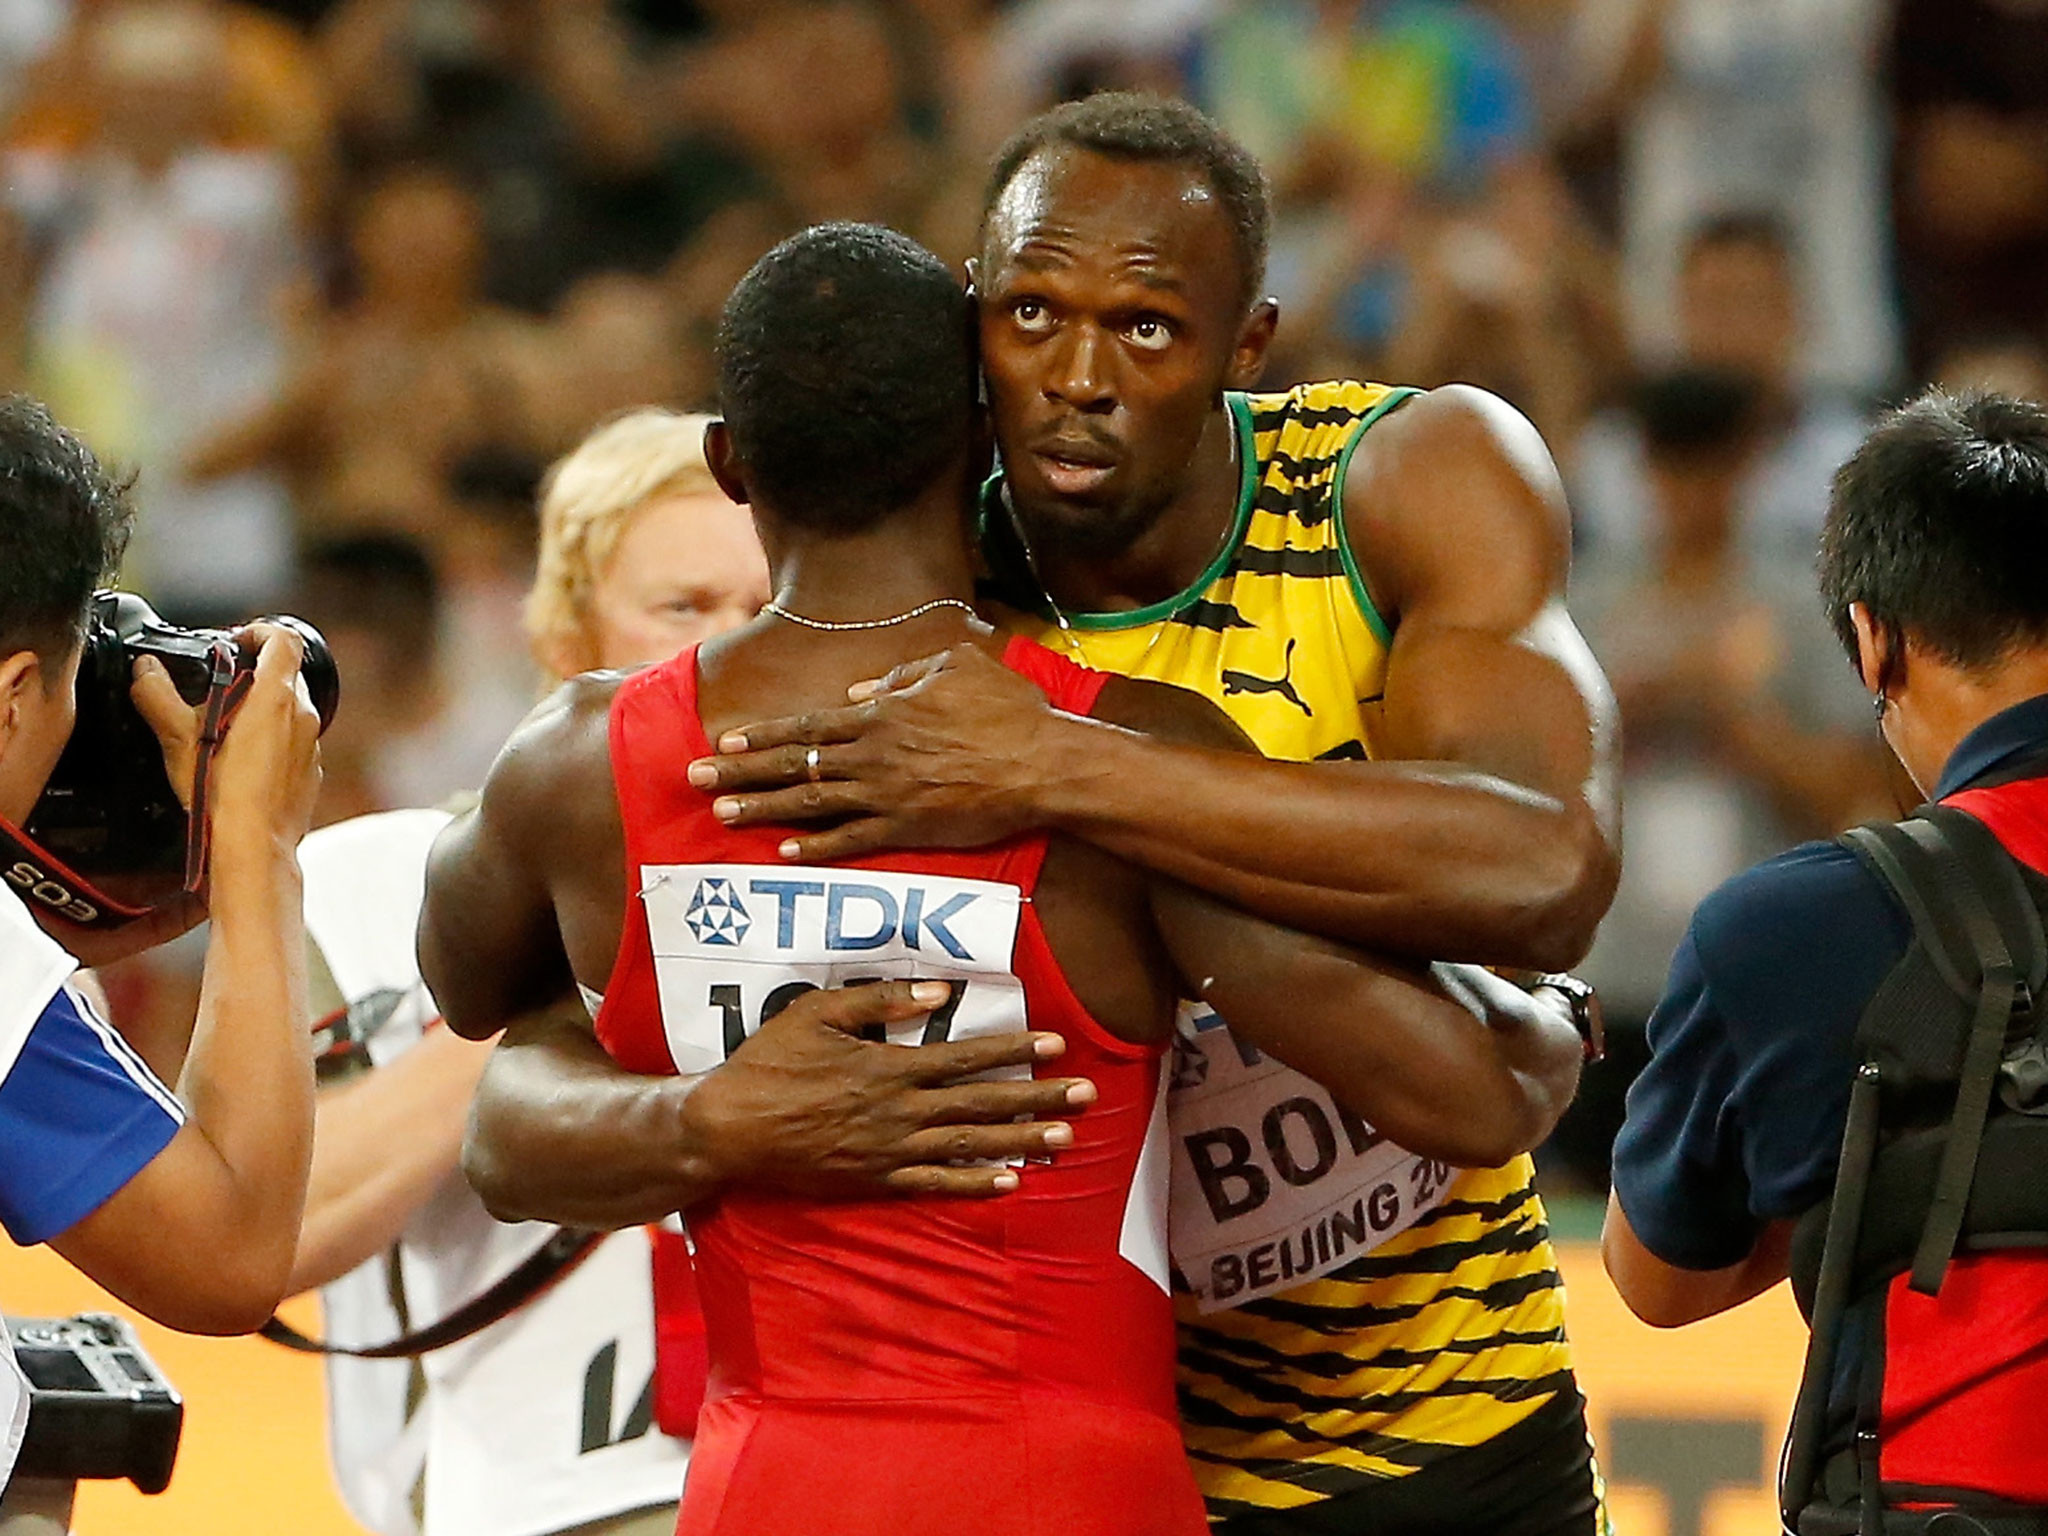 2048x1536 Usain Bolt beats Justin Gatlin in 100m final: Twitter reaction to hugely  popular result in Beijing | The Independent